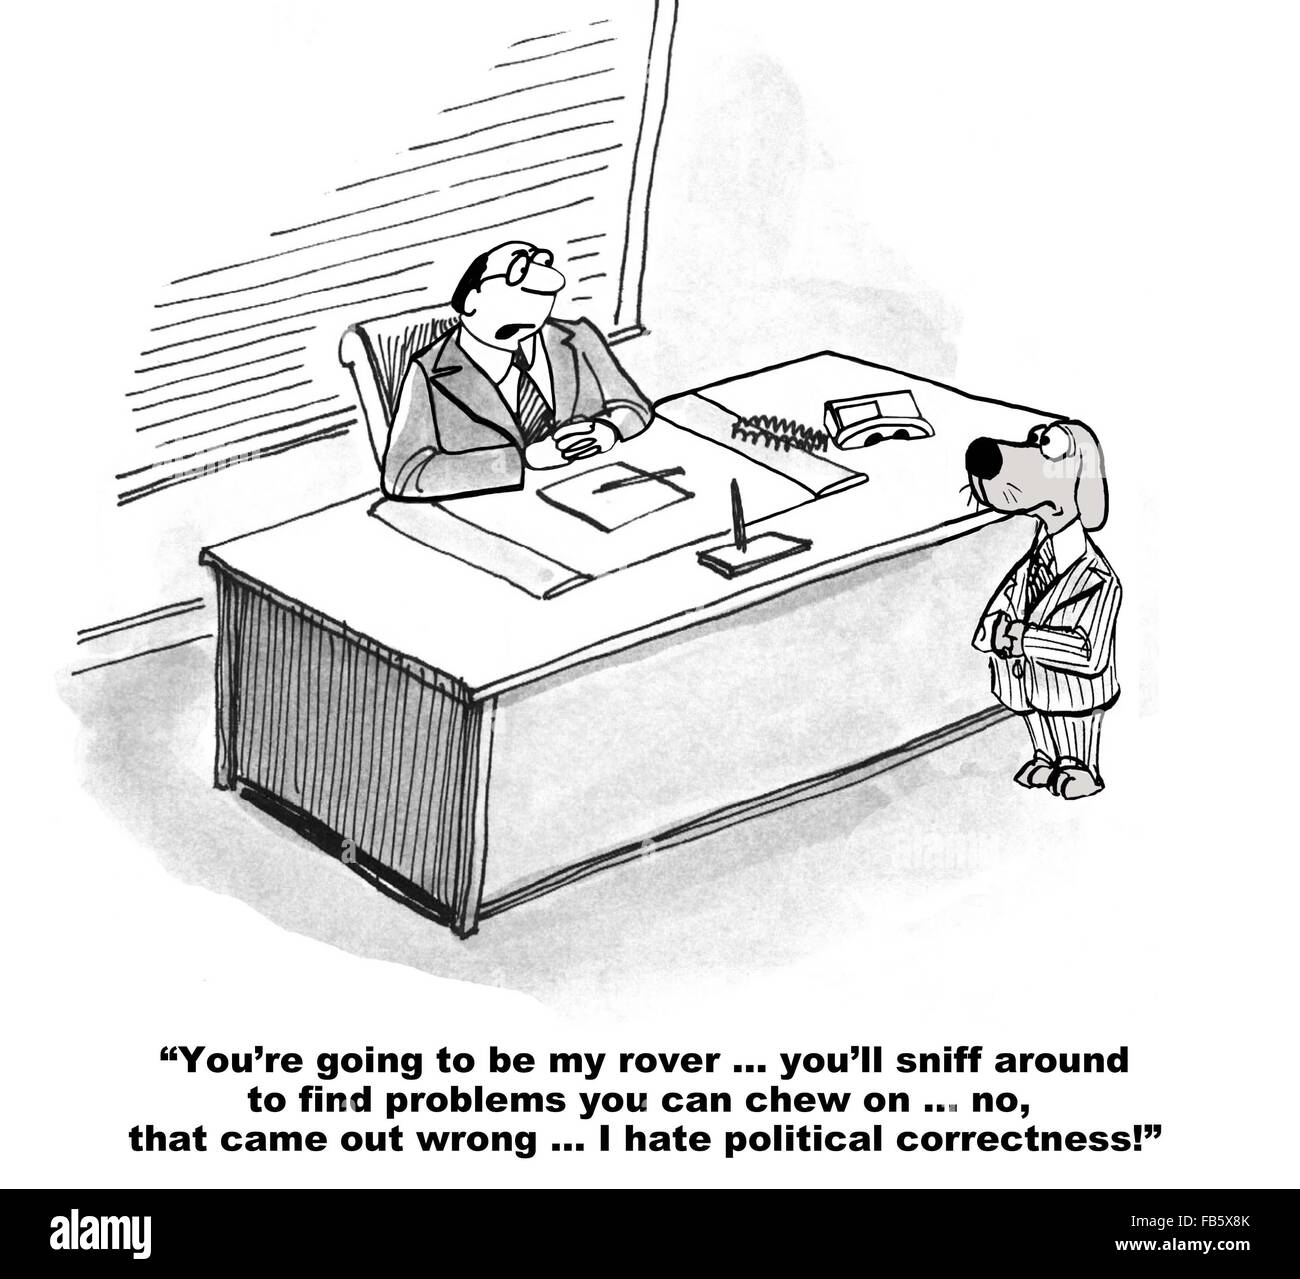 Cartoon about being politically correct.  The secretary dog was to 'sniff' around and find problems to 'chew - Stock Image